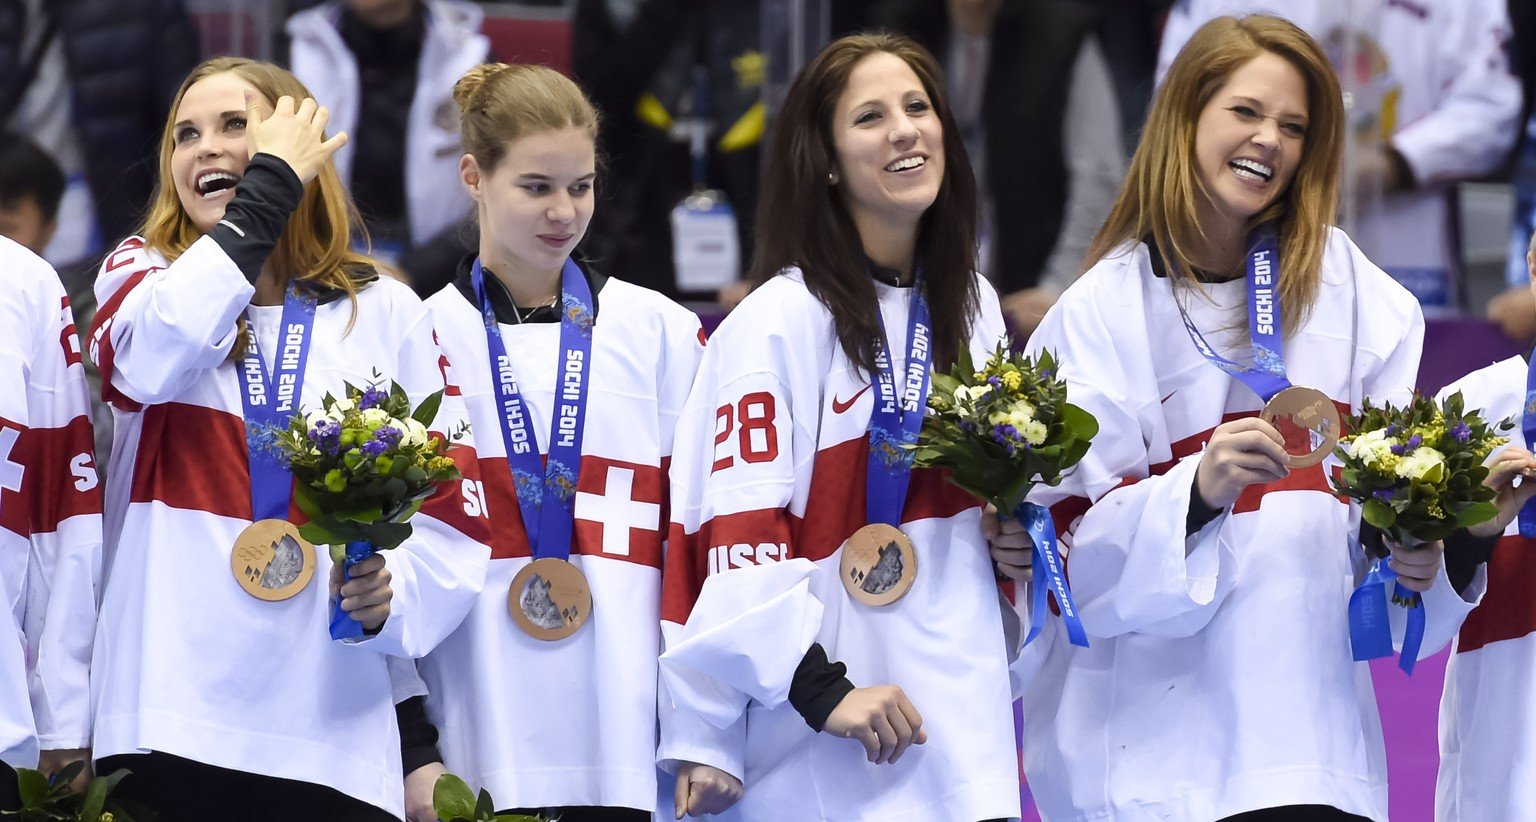 Switzerland's ice hockey women goalkeepers Florence Schelling, right, and Sophie Anthamatten, second from right, celebrate their bronze medal during the women's ice hockey victory ceremony at the XXII Winter Olympics 2014 Sochi, at the Bolshoy Ice Dome, in Sochi, Russia, on Thursday, February 20, 2014. (KEYSTONE/Laurent Gillieron)